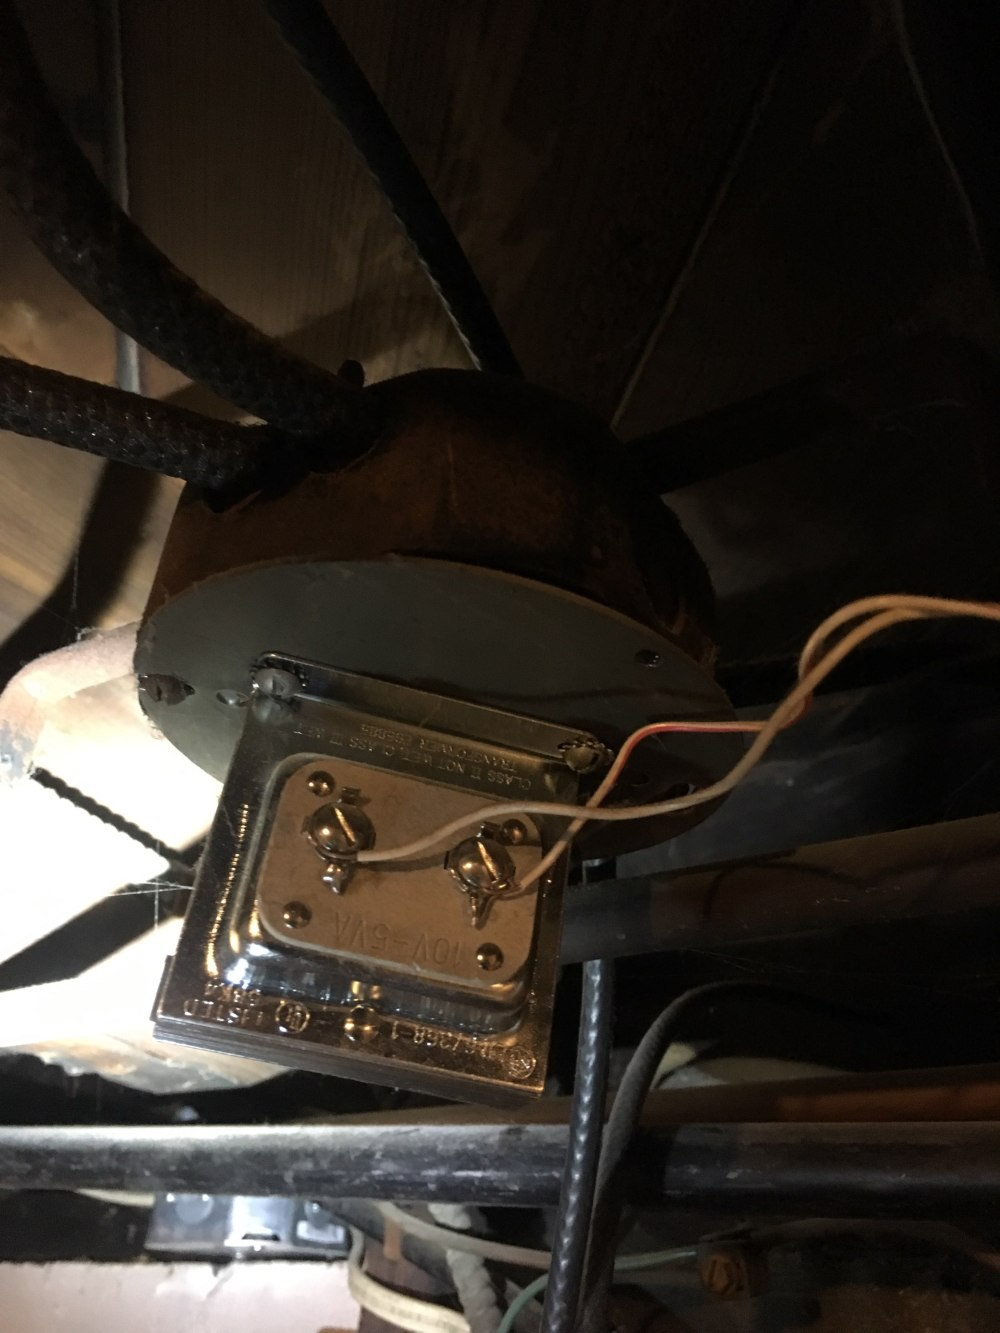 medium resolution of existing low voltage transformer located in basement that did not provide enough power for the